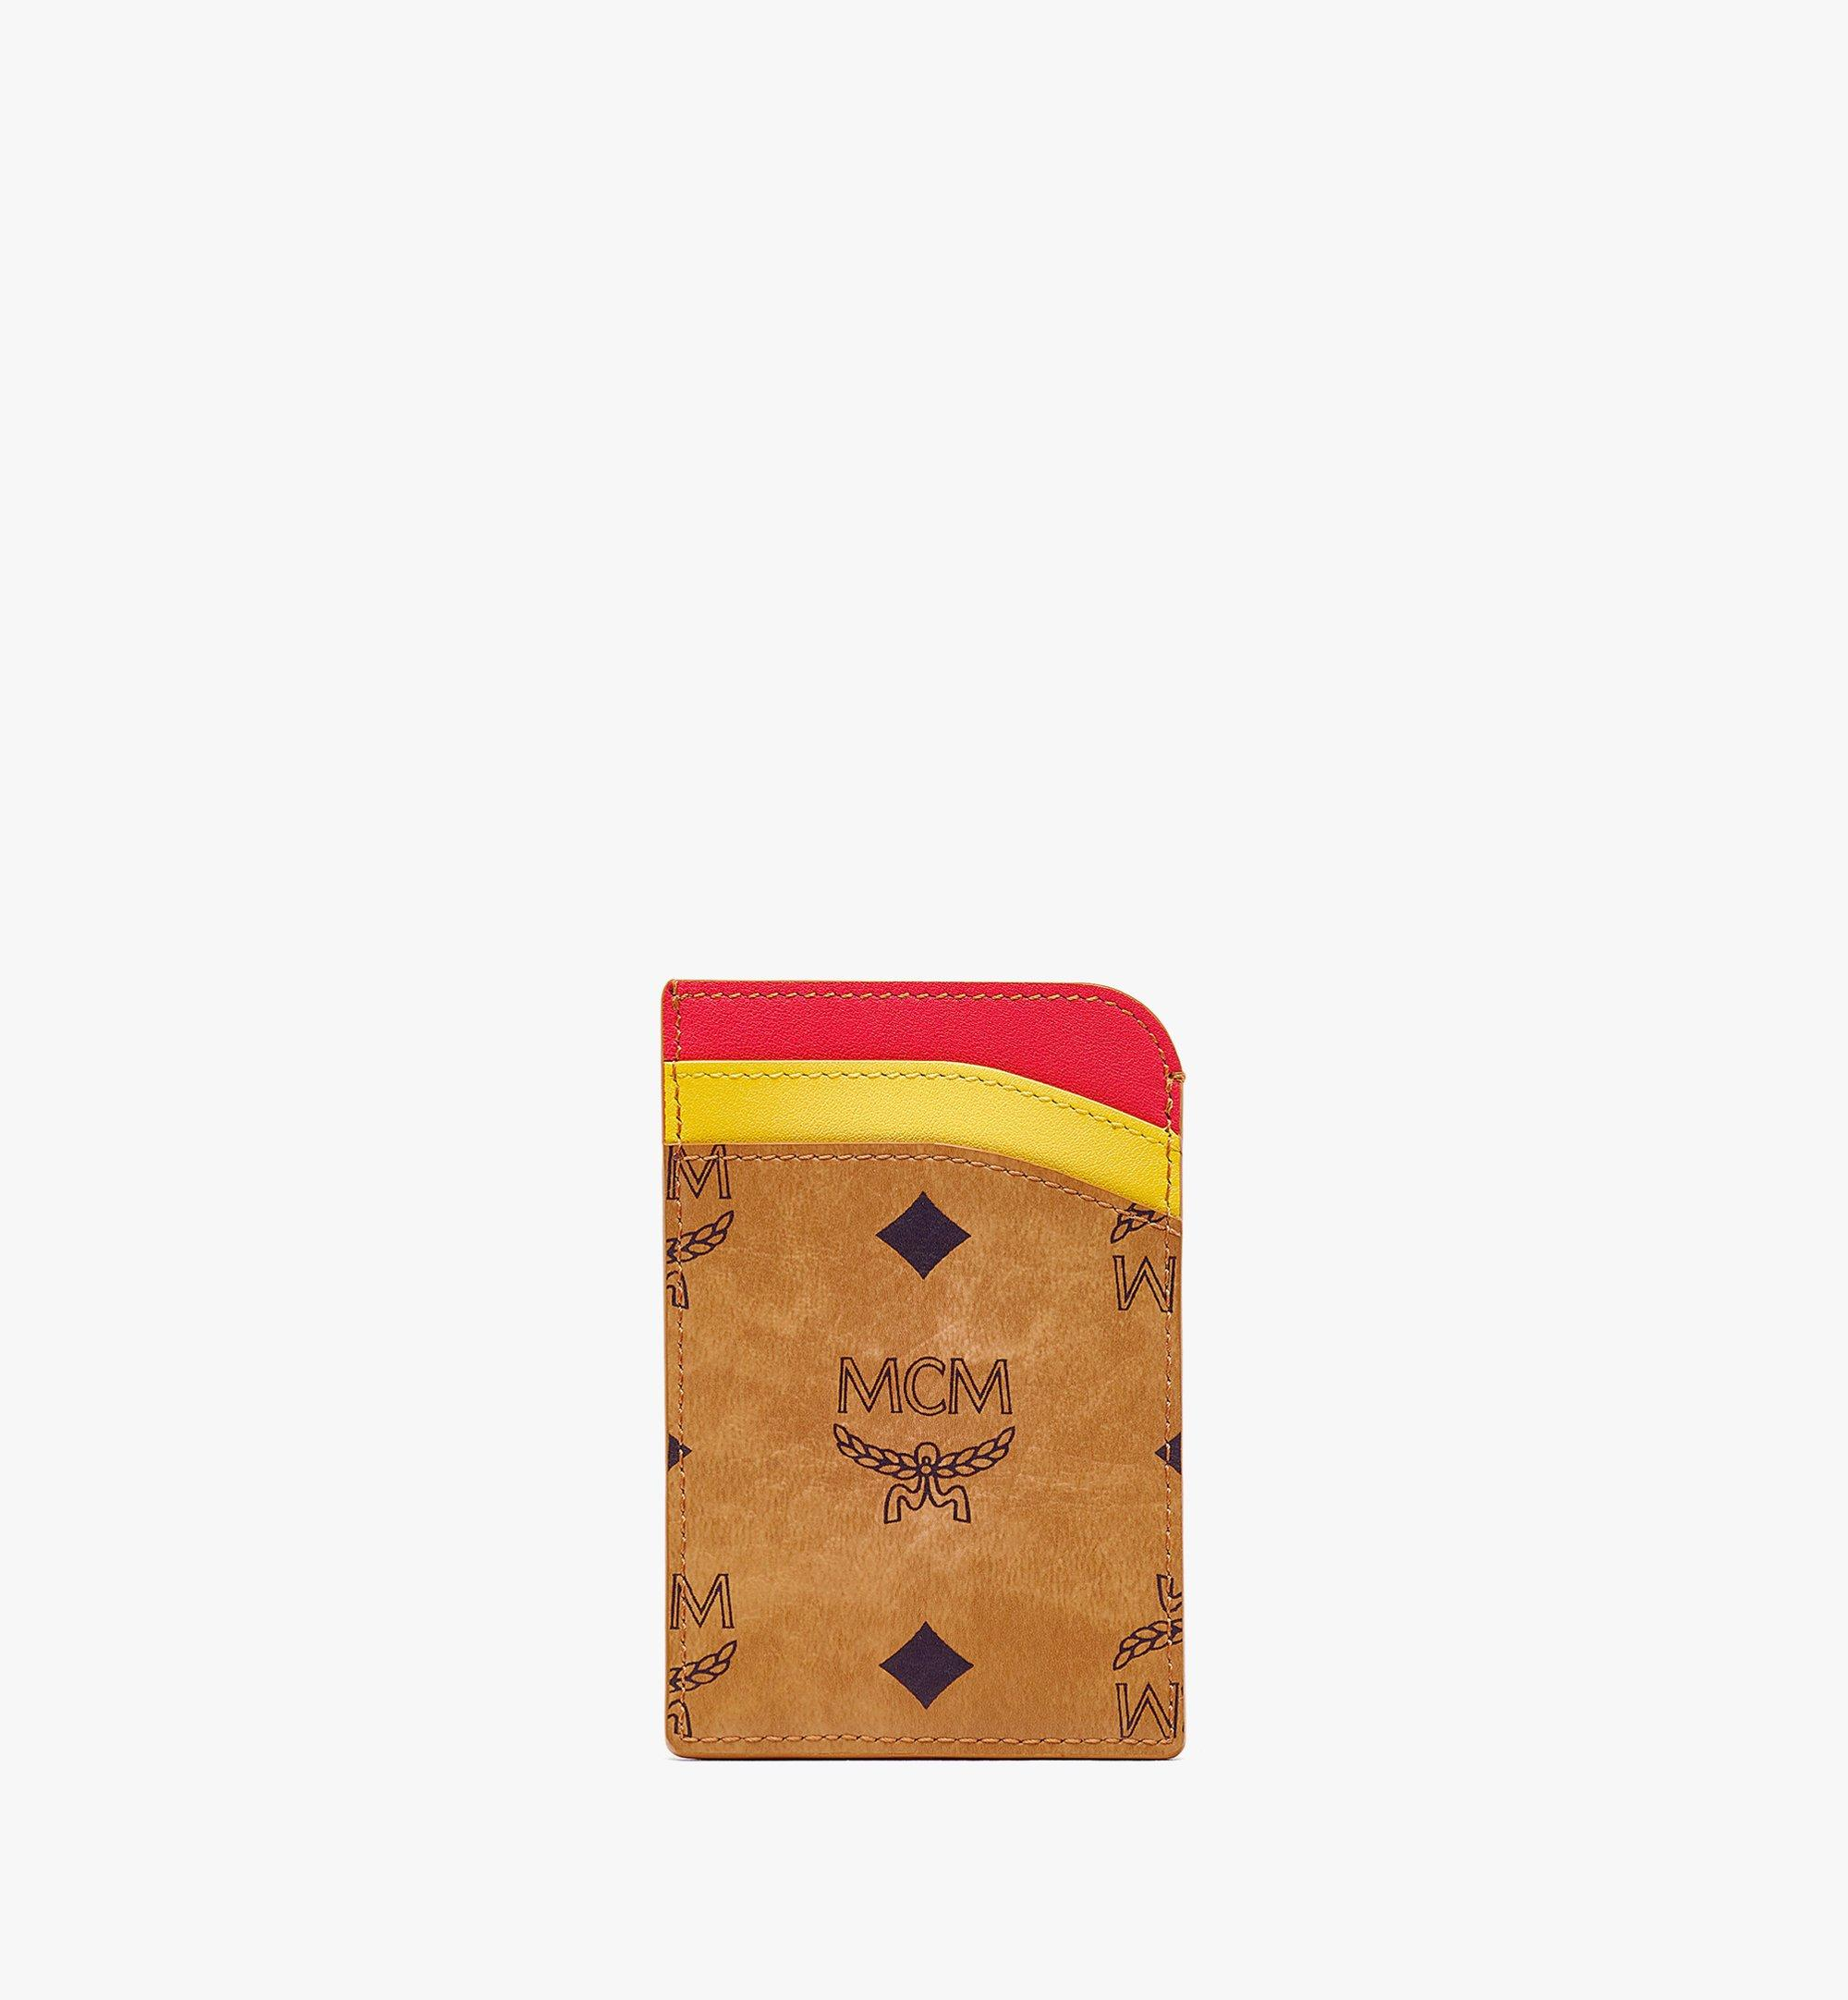 MCM MCM Zoo N/S Parrot Card Case in Visetos Leather Mix Cognac MXABSXL03CO001 Alternate View 2